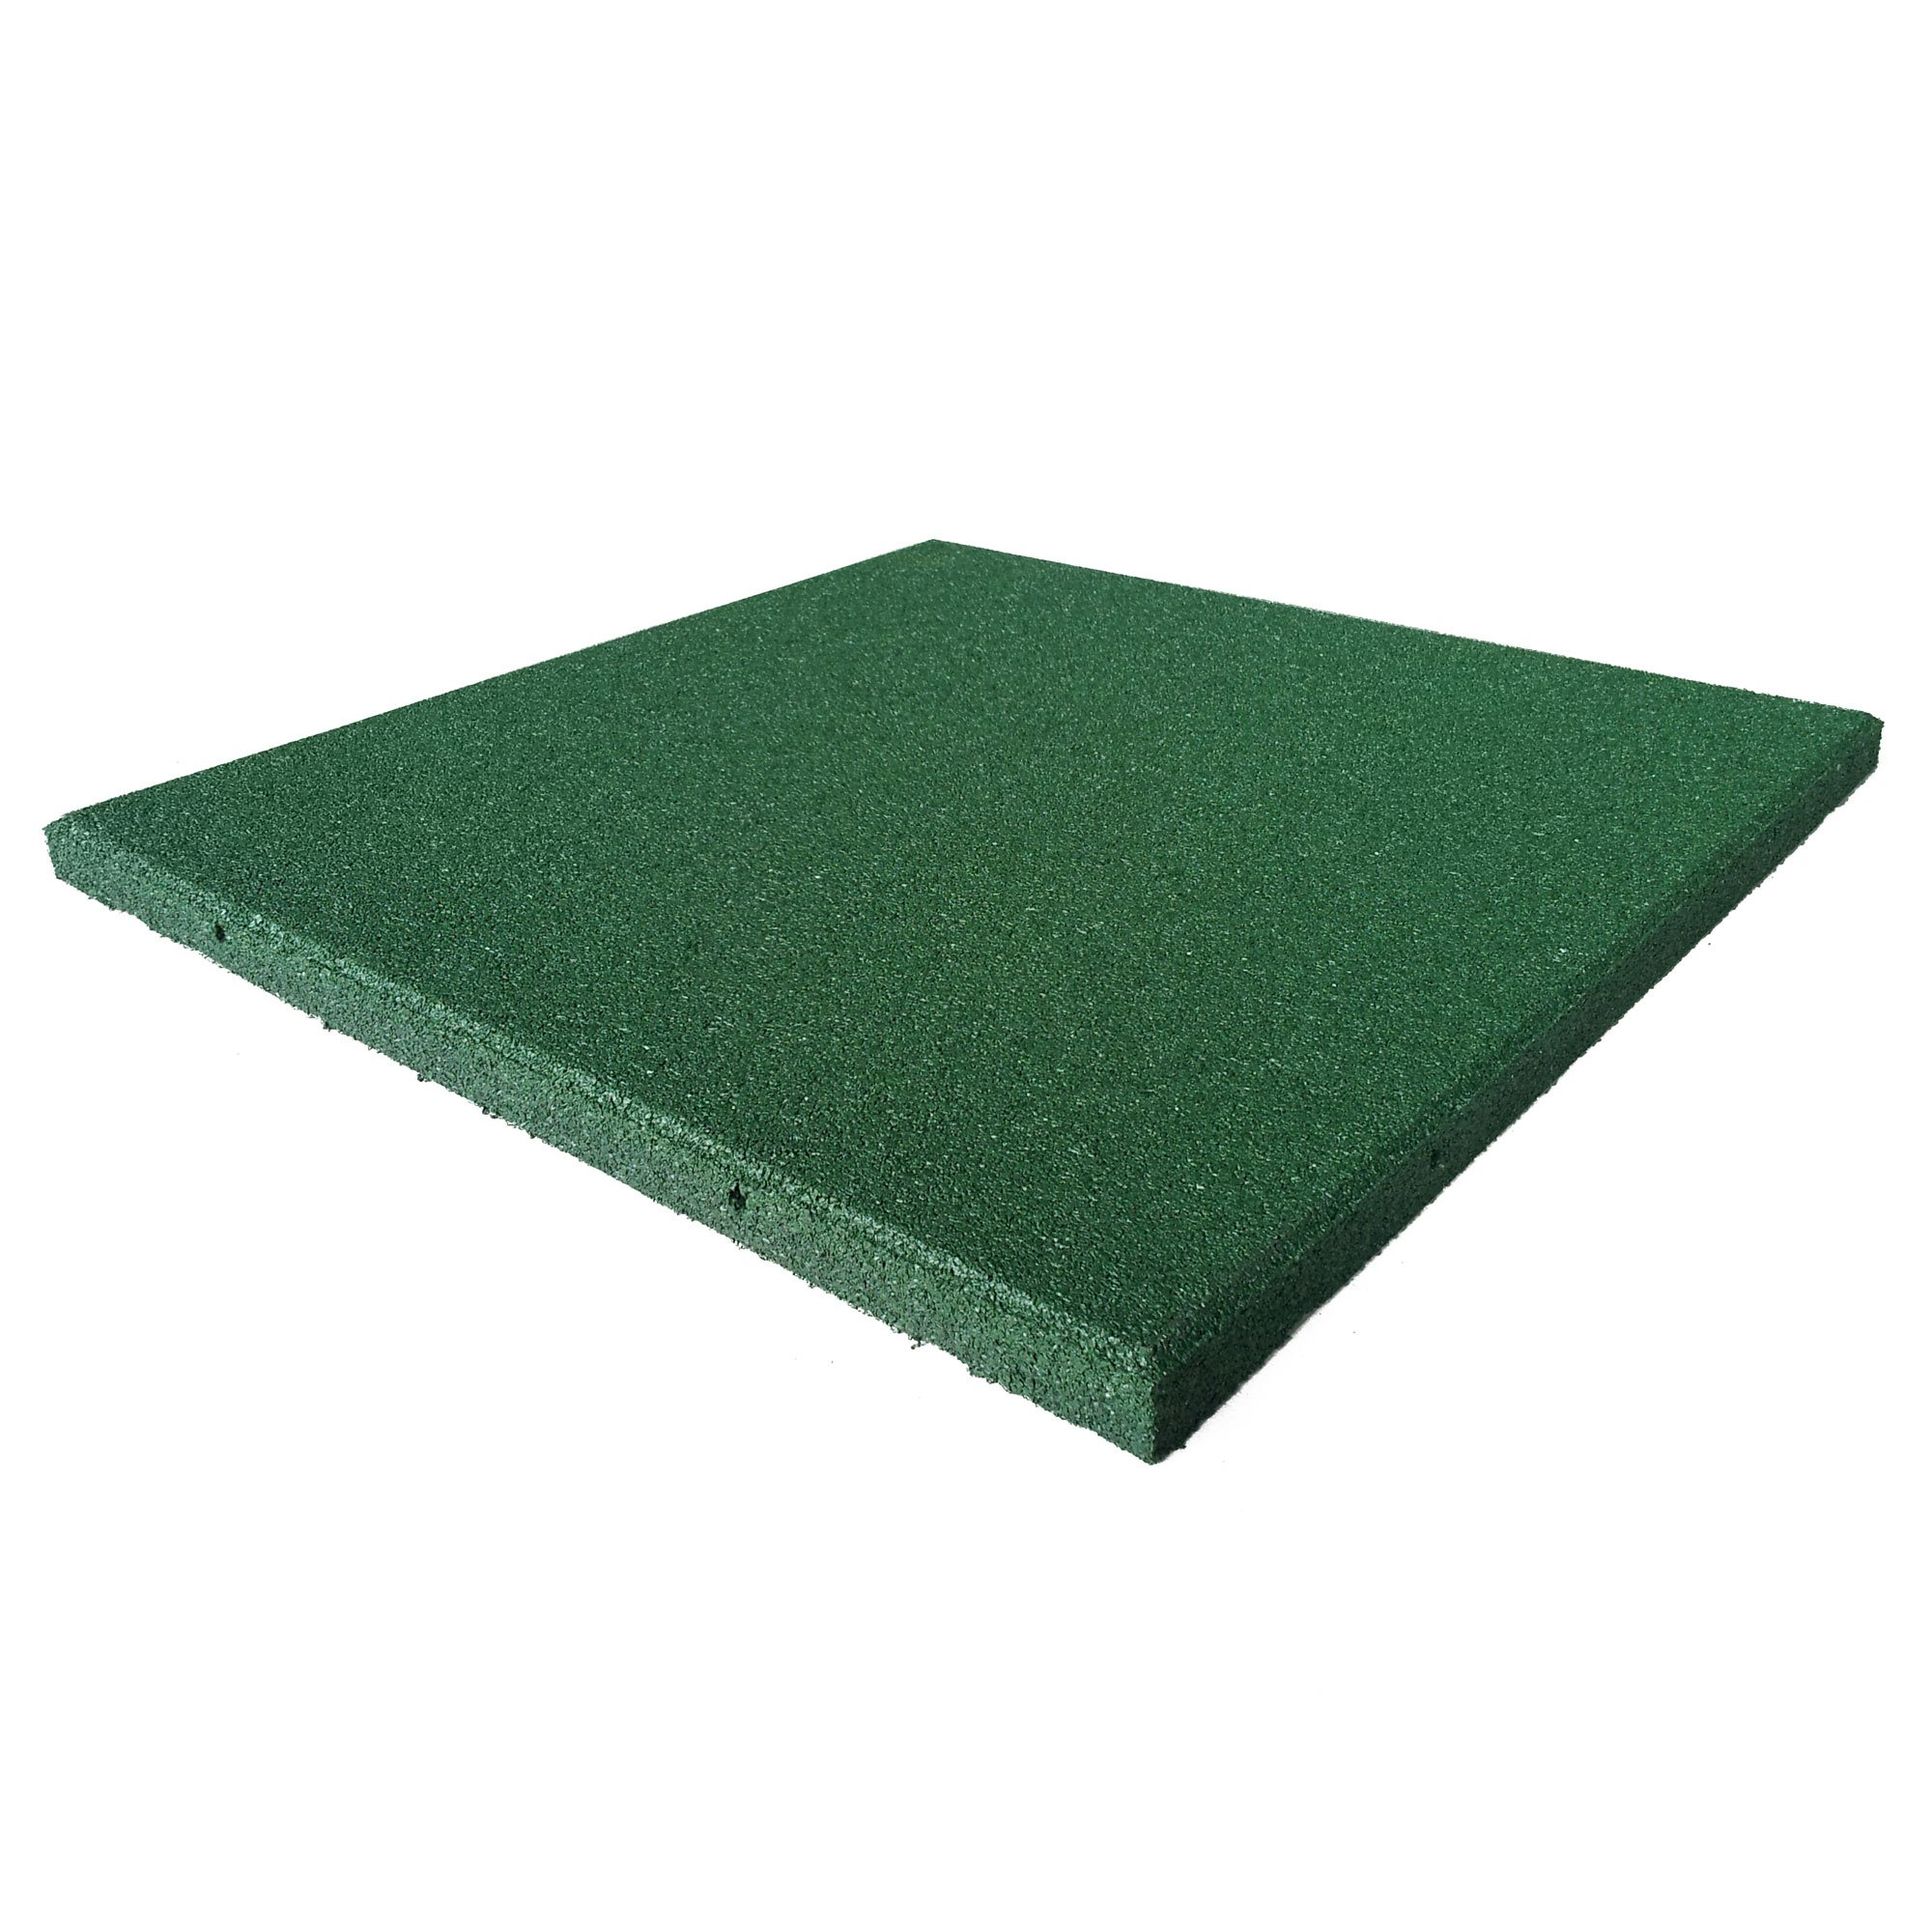 Rubber Cal Eco-Sport Interlocking Tile-Pack of 5, Green, 3/4 x 20 x 20-Inch